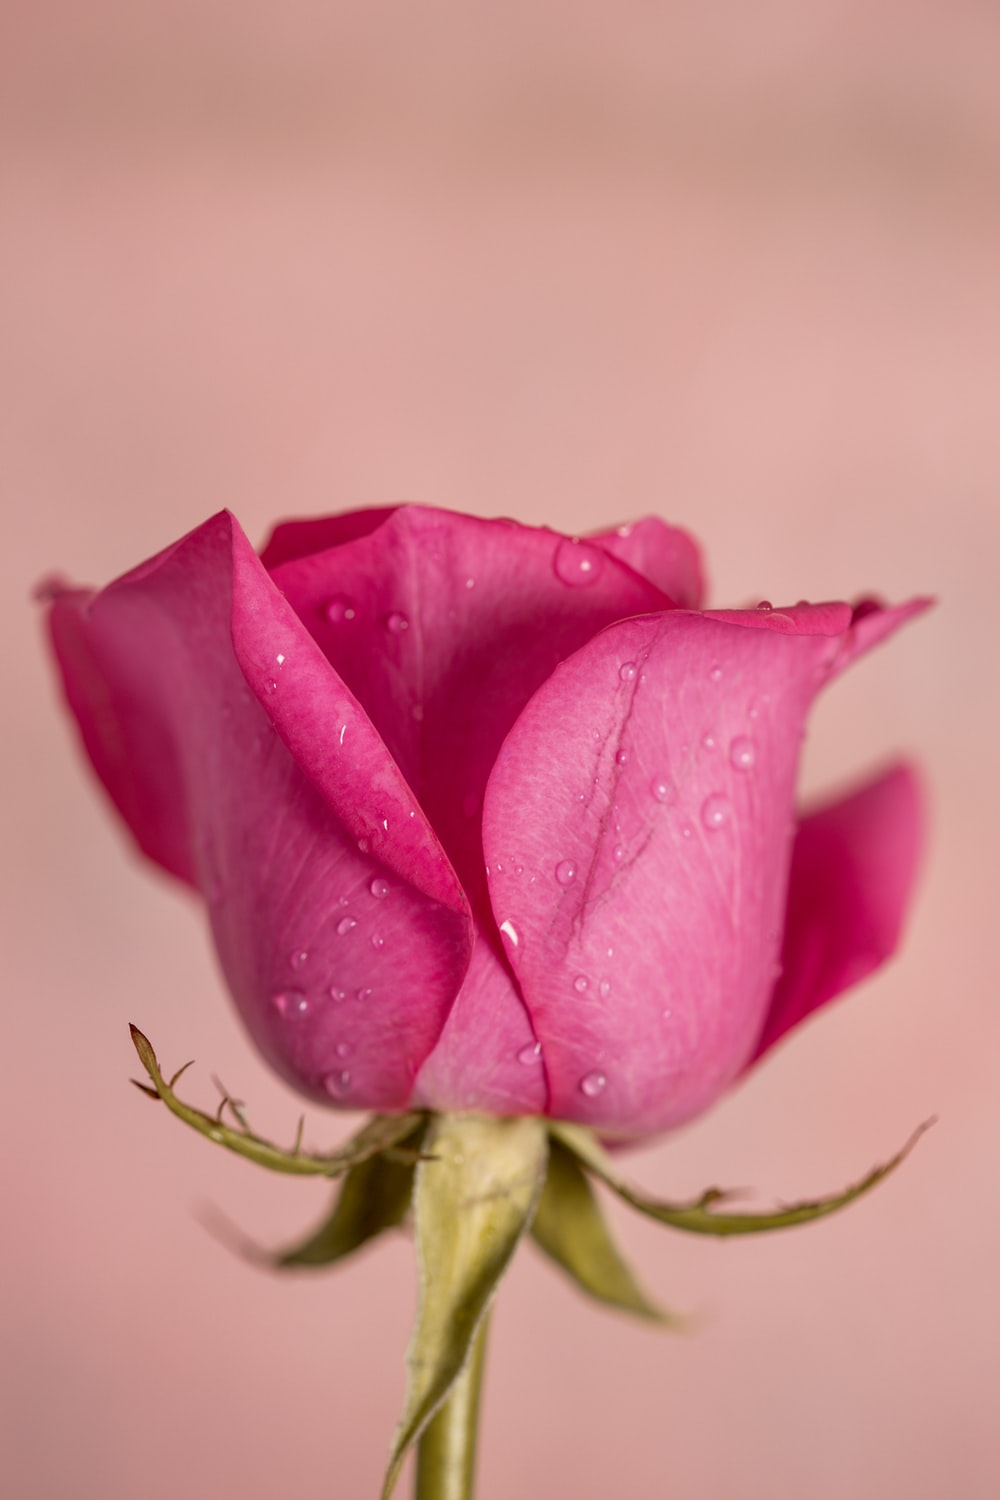 pink rose in bloom close up photo